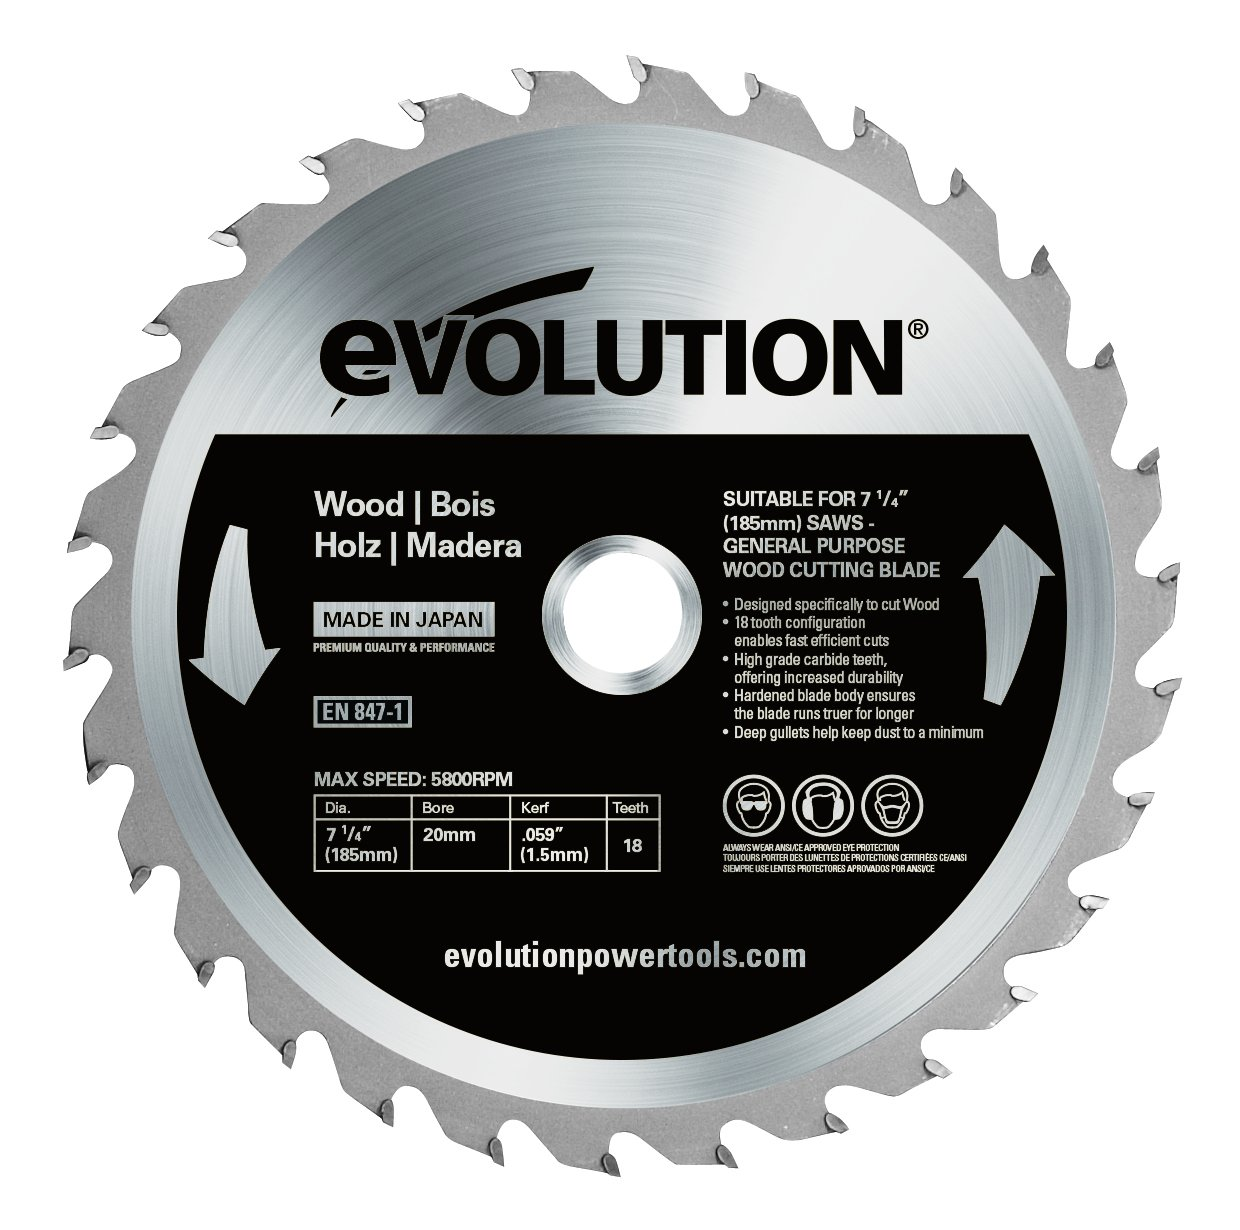 Evolution Thin Steel Carbide-Tipped Blade, 355 mm Evolution Power Tools (Steel) - Industrial Metal Fabrication EVOBLADE355TS